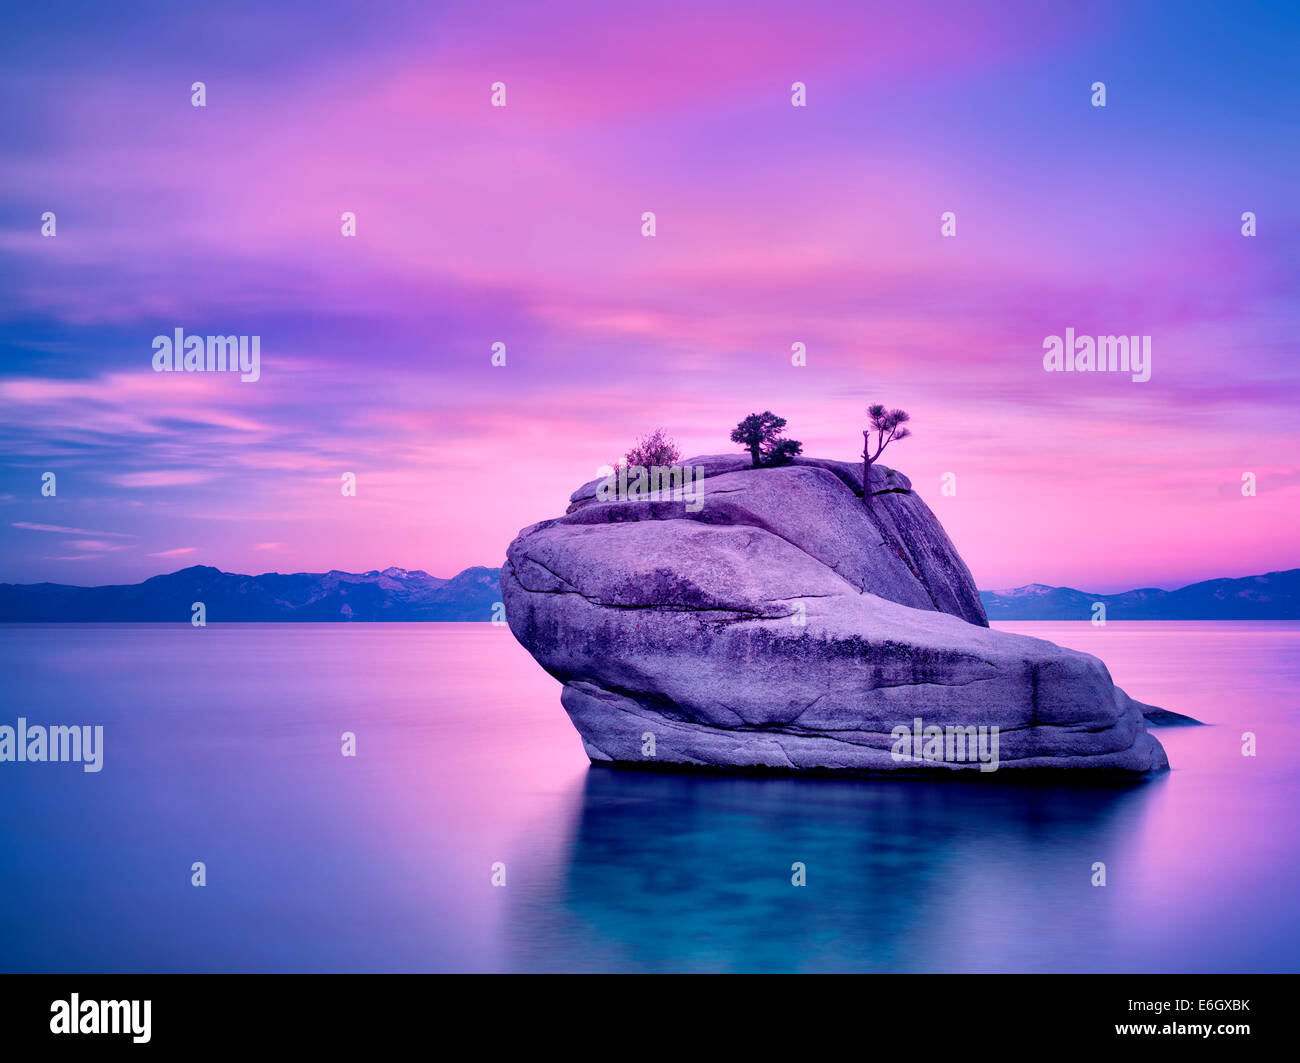 Bonsai arbre sur un rocher avec le lever du soleil. Lake Tahoe, Nevada Photo Stock